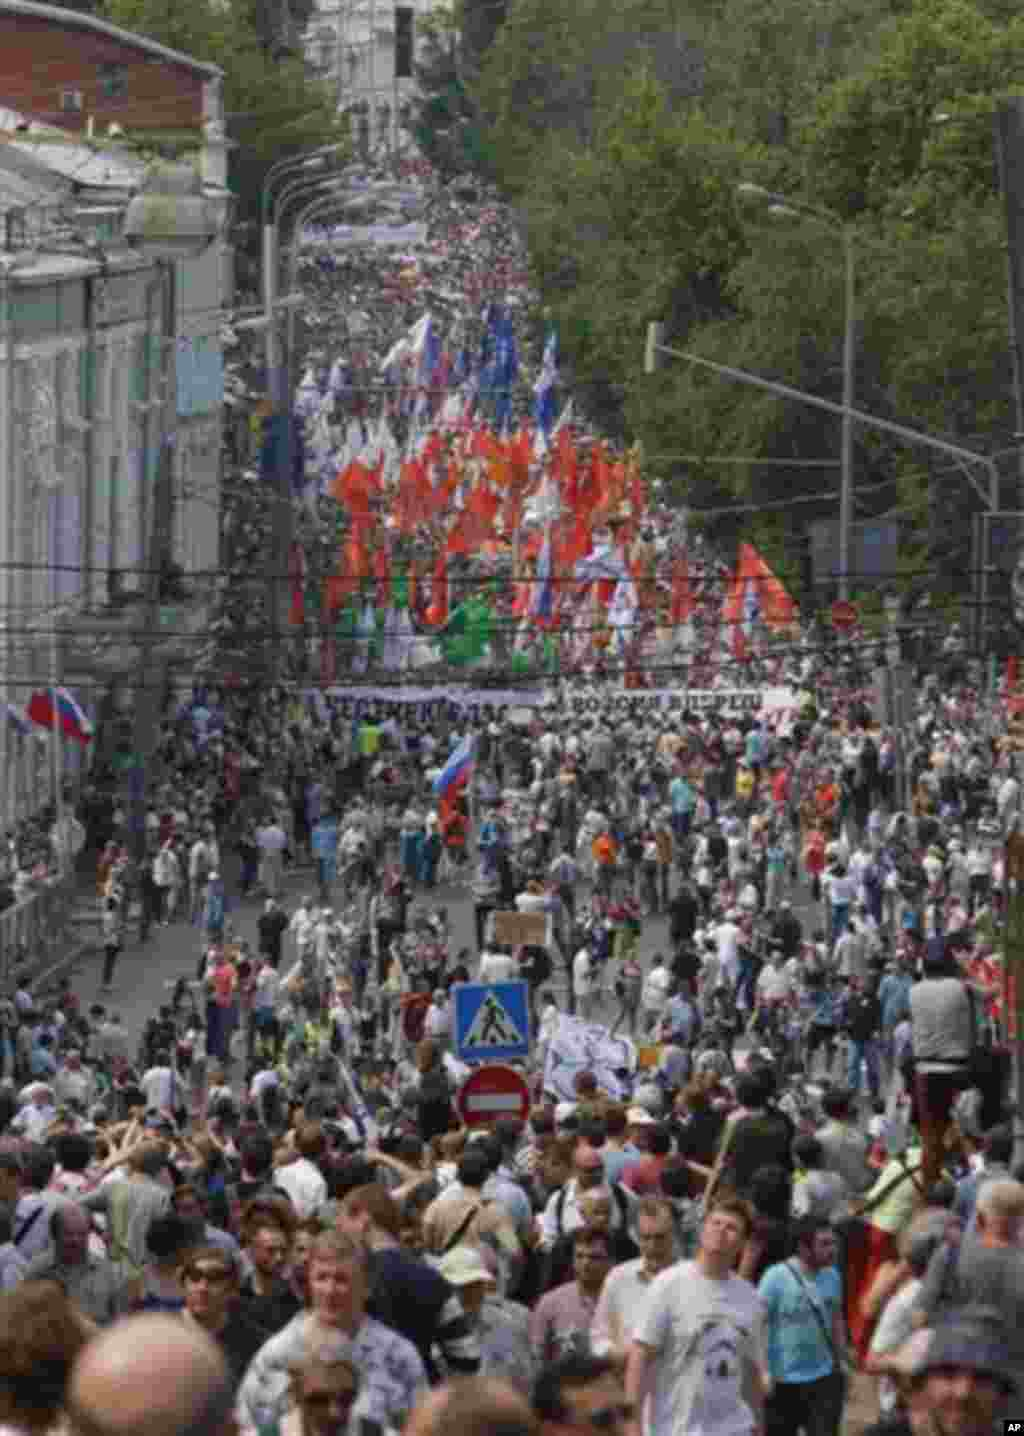 Opposition members march in central Moscow on Tuesday, June 12, 2012. Tens of thousands of Russians flooded Moscow's tree-lined boulevards Tuesday in the first massive protest against President Vladimir Putin's rule since his inauguration, as investigato